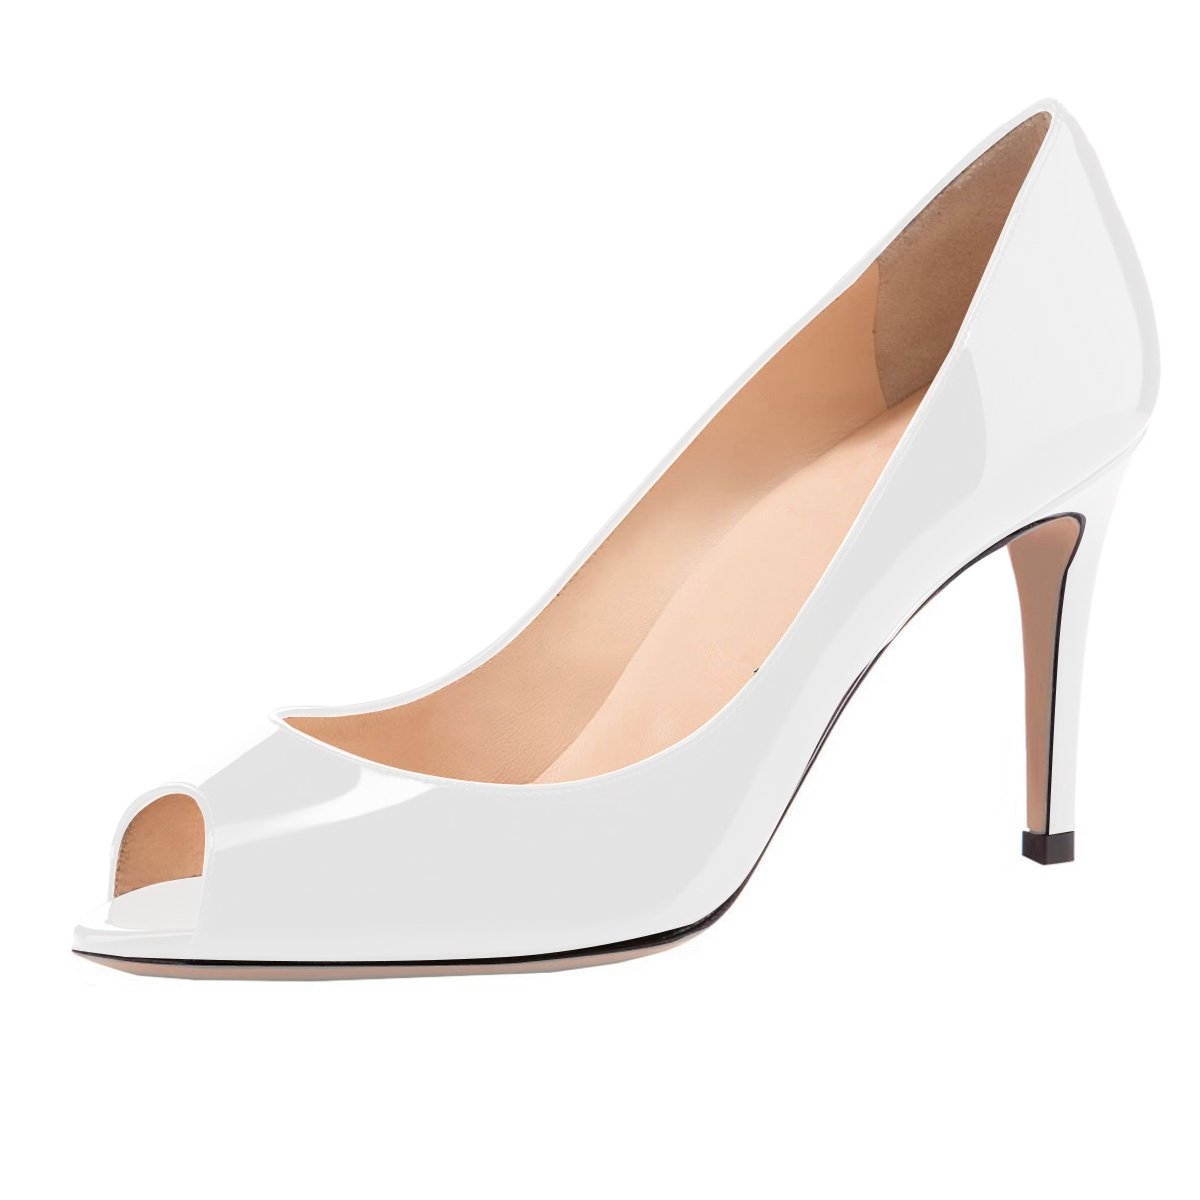 Eldof Women Peep Toe Pumps Mid-Heel Pumps Formal Wedding Bridal Classic Heel Open Toe Stiletto B07F1NPD7X 11 B(M) US|White